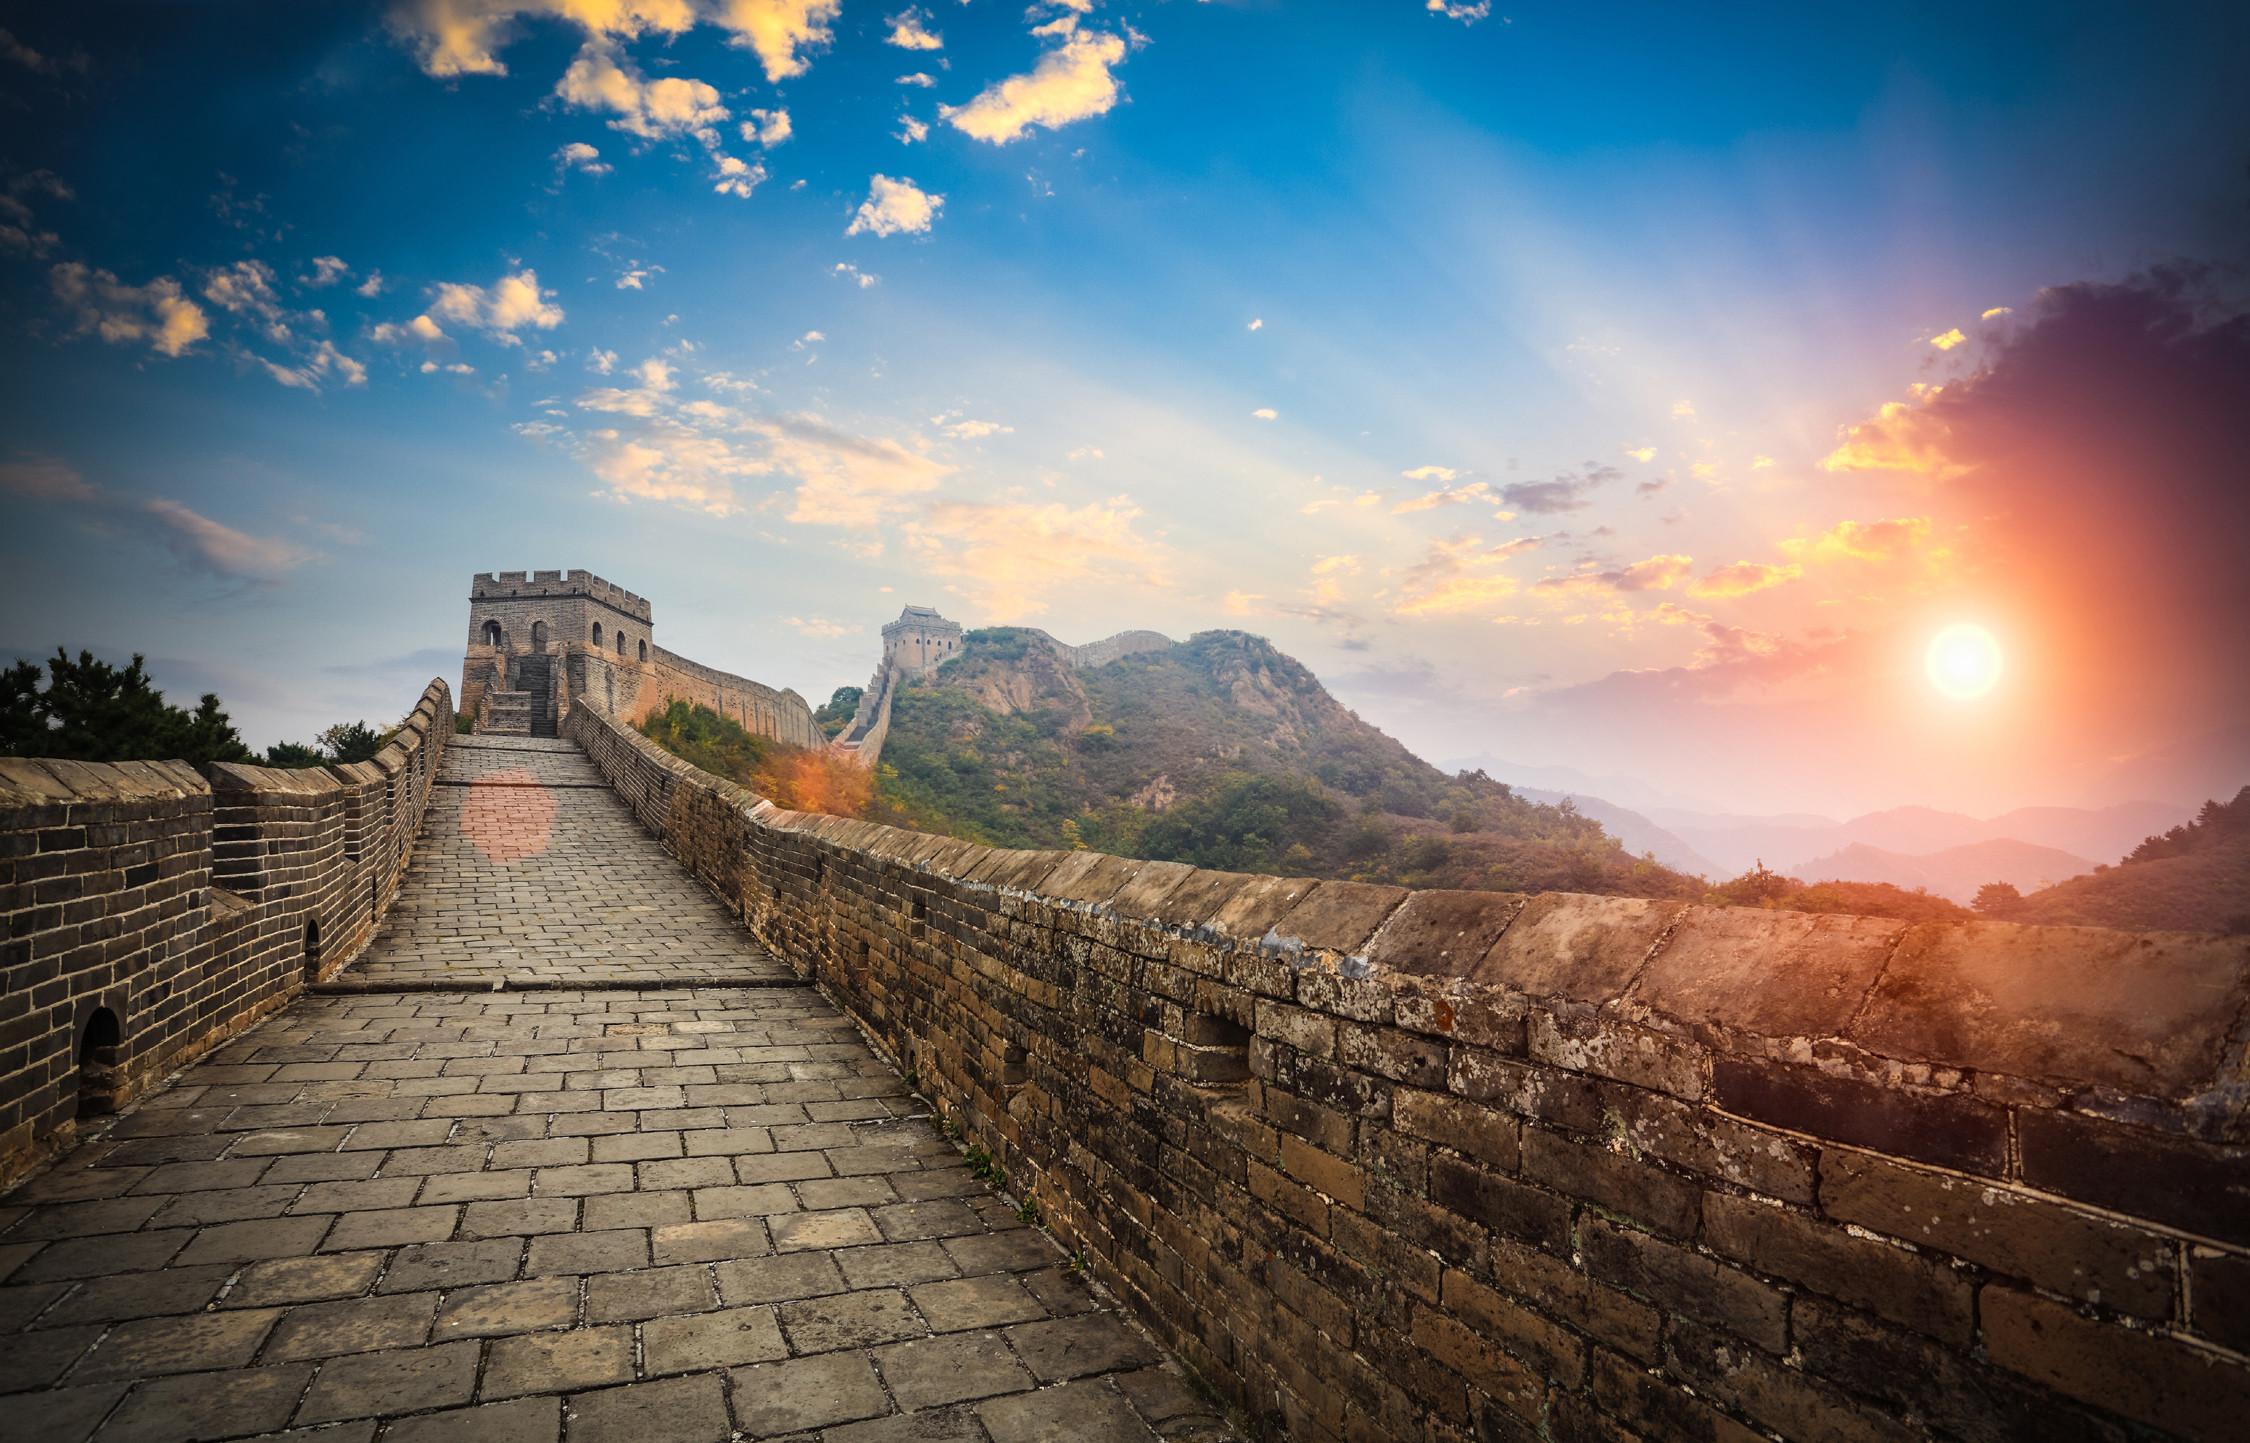 The Great Wall of China Wallpaper 51 images 2250x1443